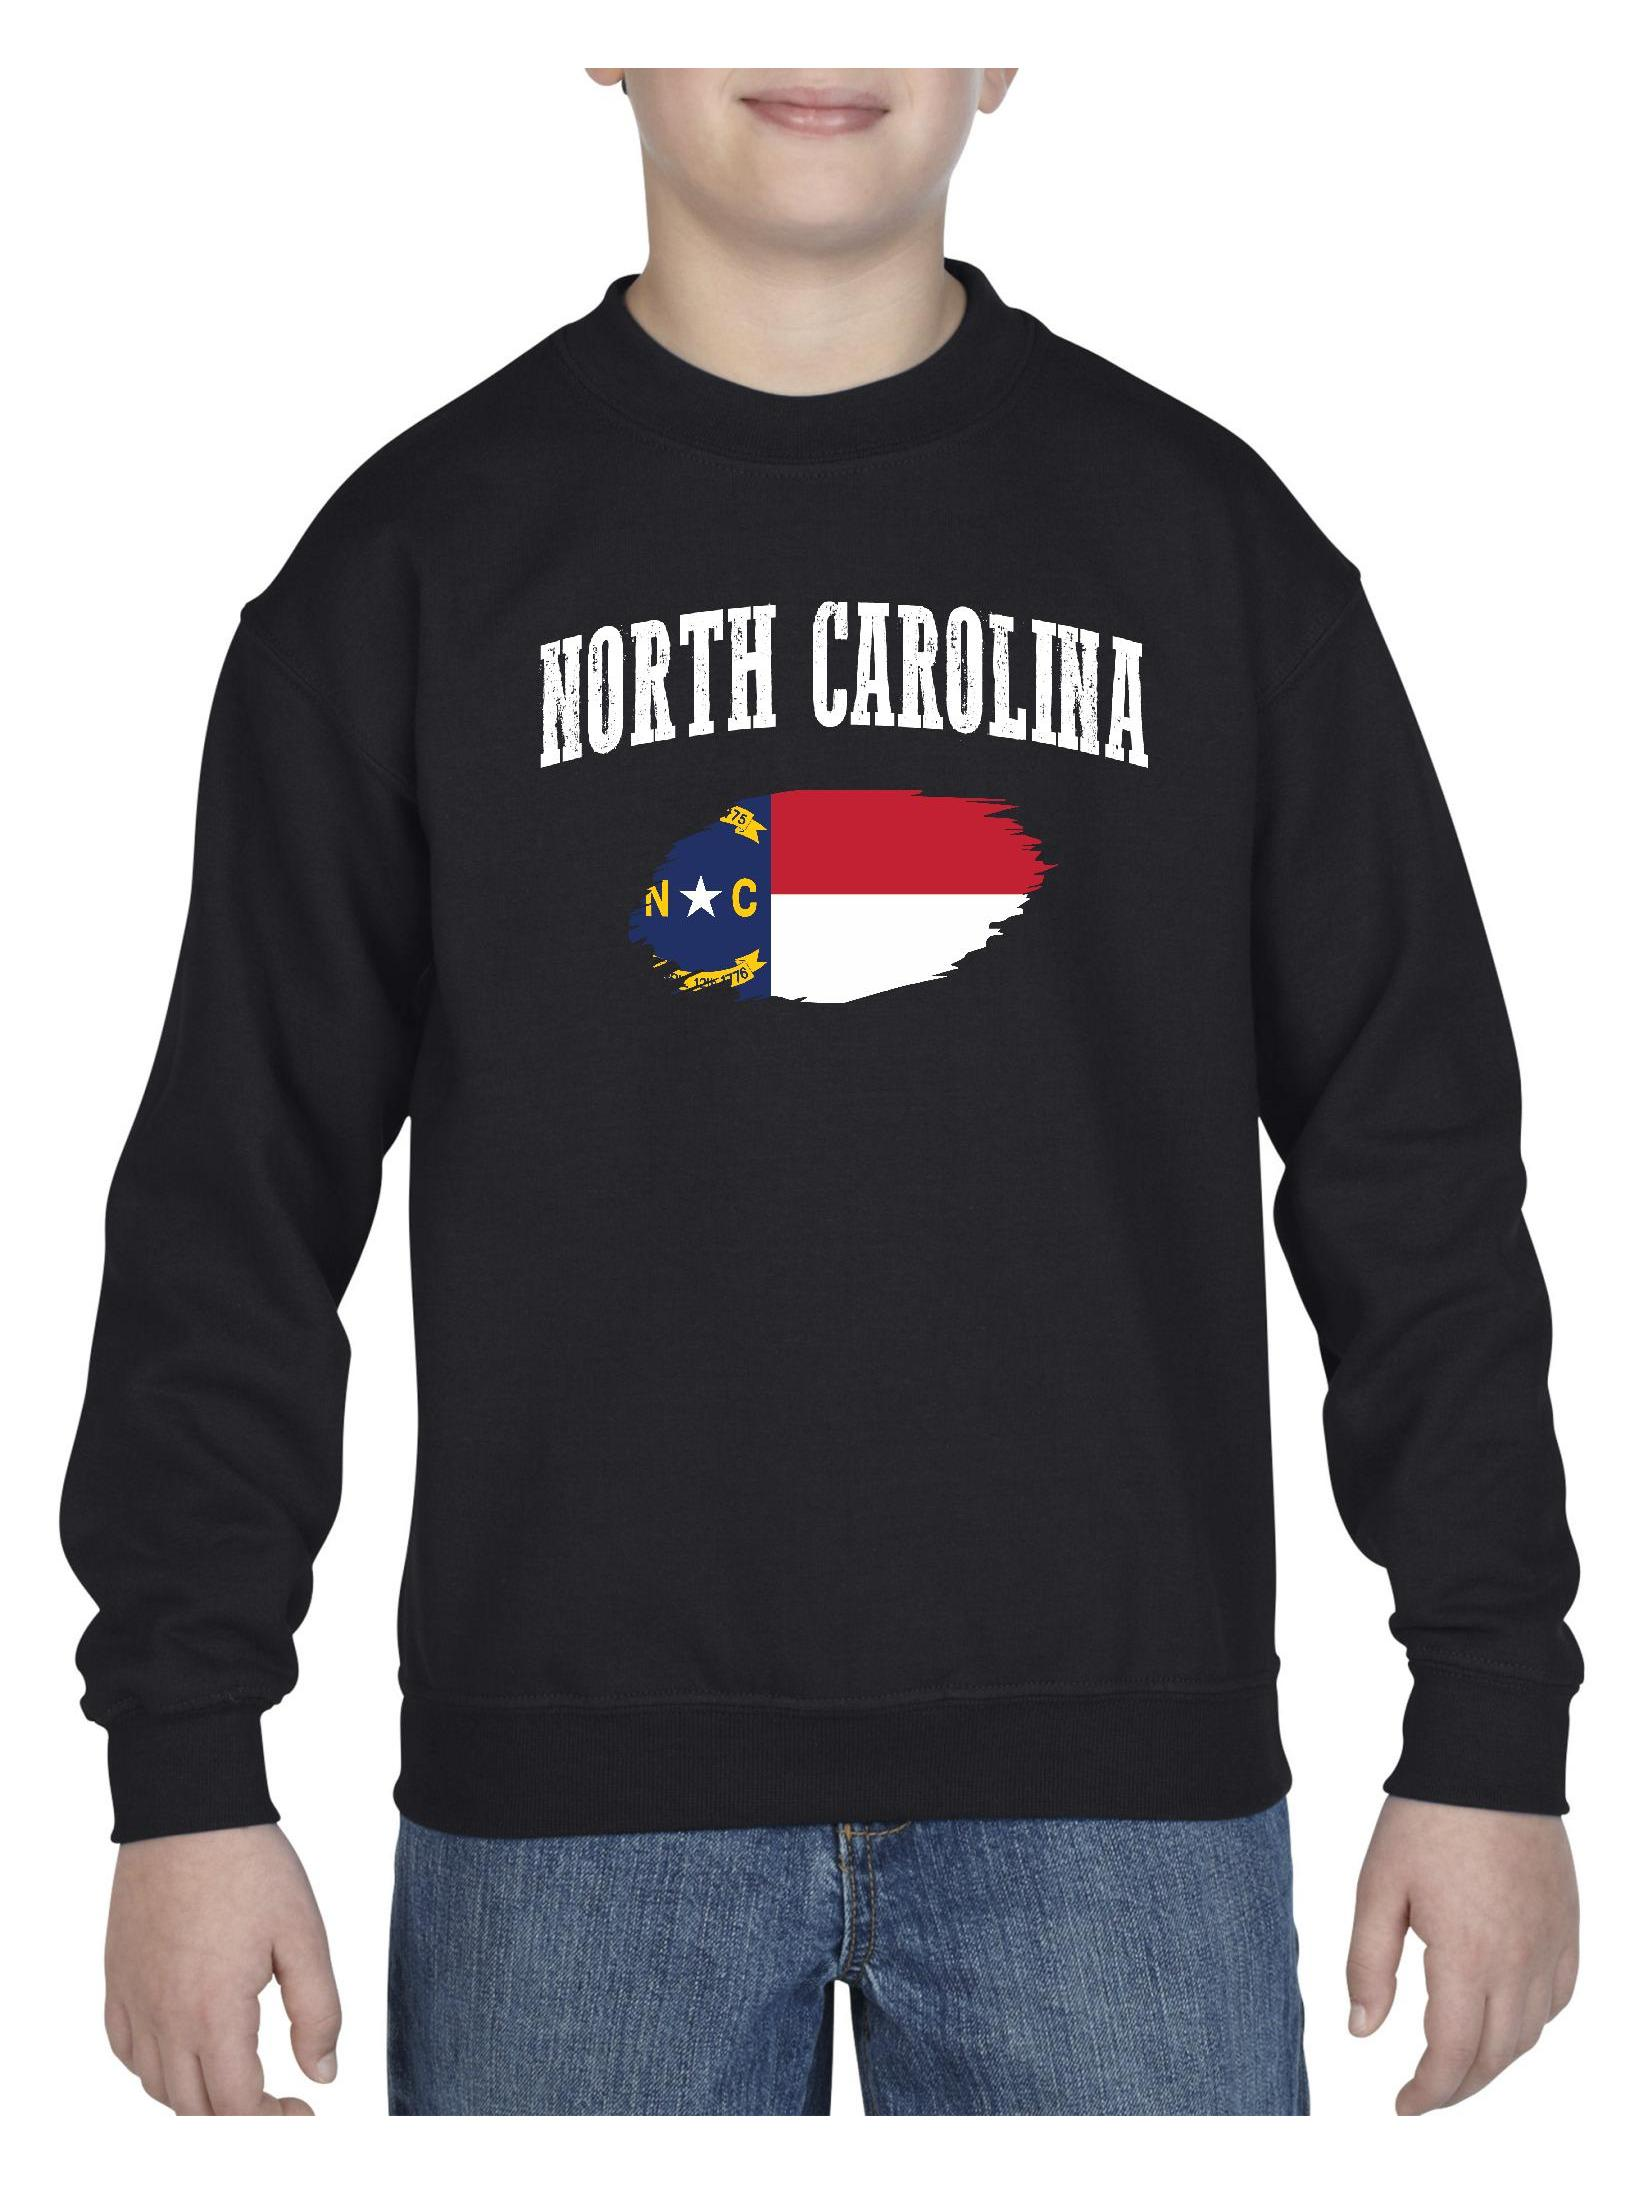 North Carolina State Flag Unisex Youth Crewneck Sweatshirt